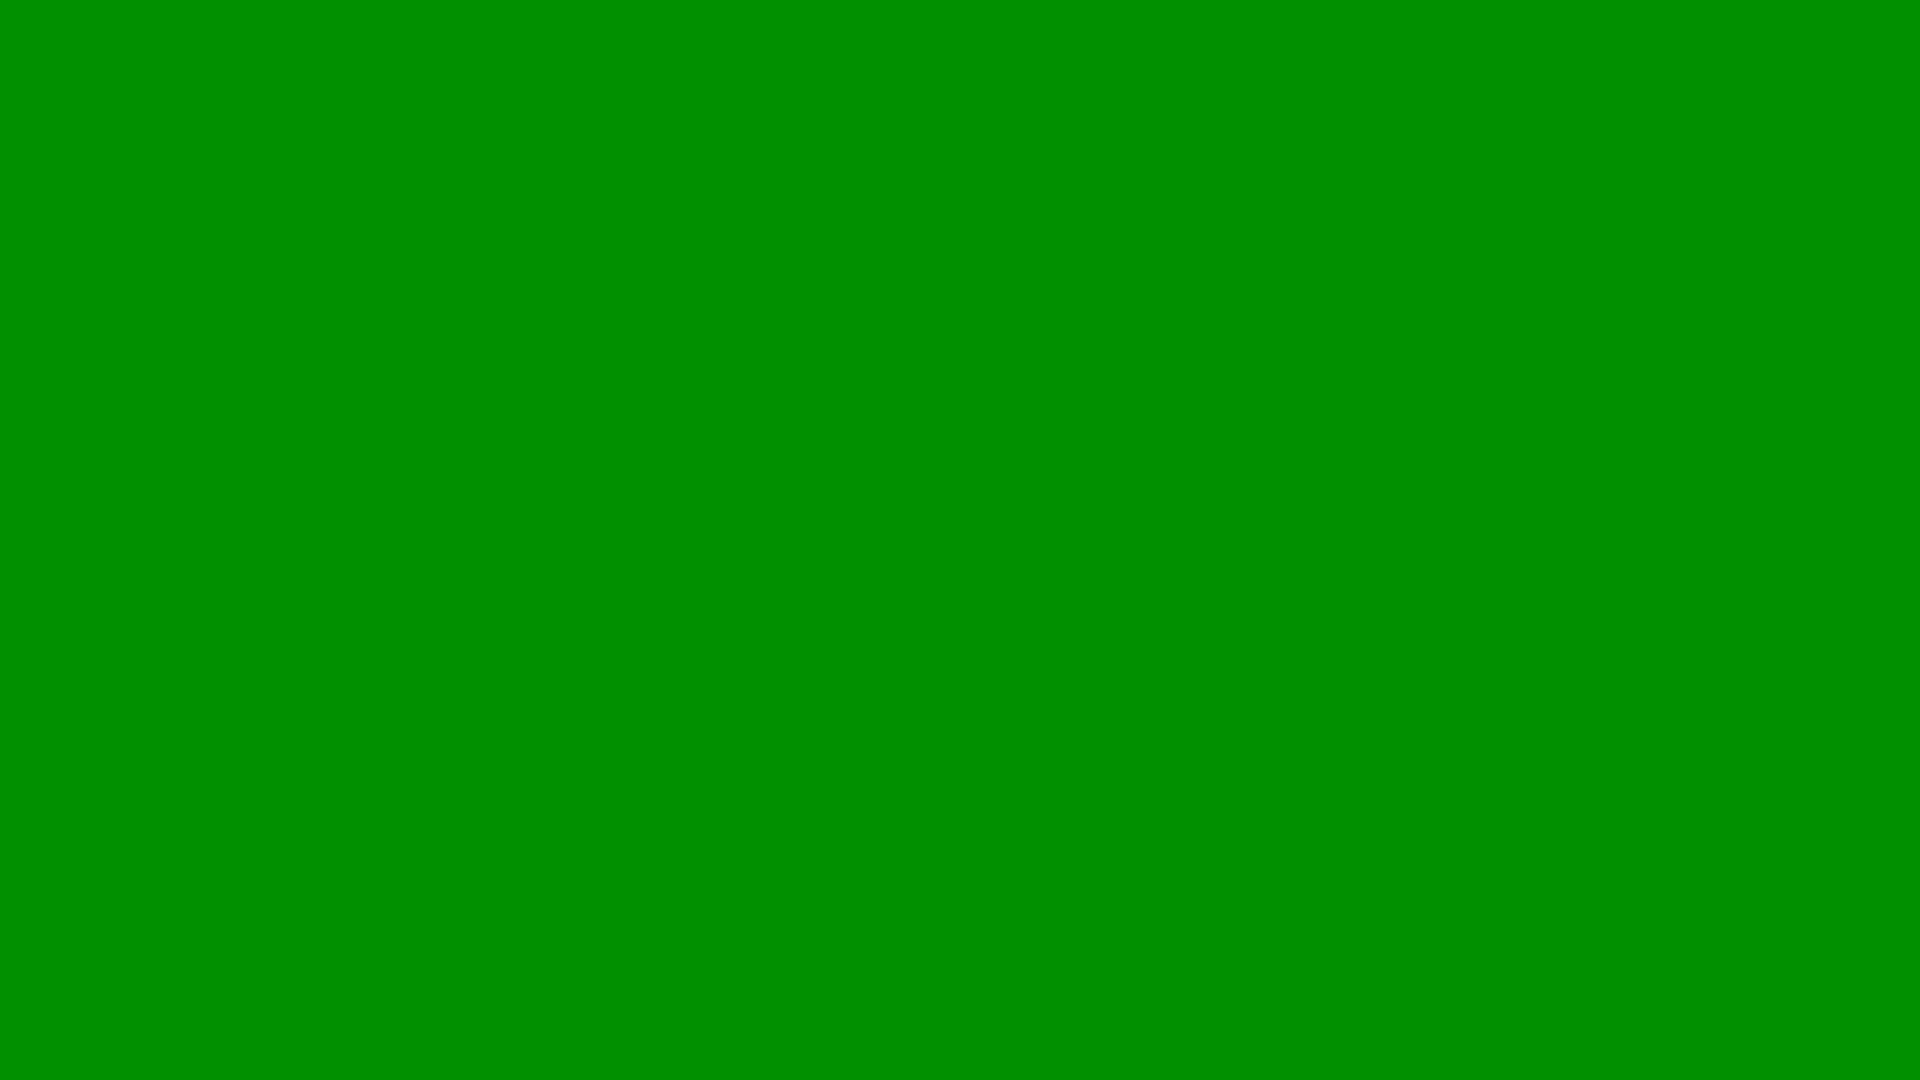 1920x1080 Islamic Green Solid Color Background